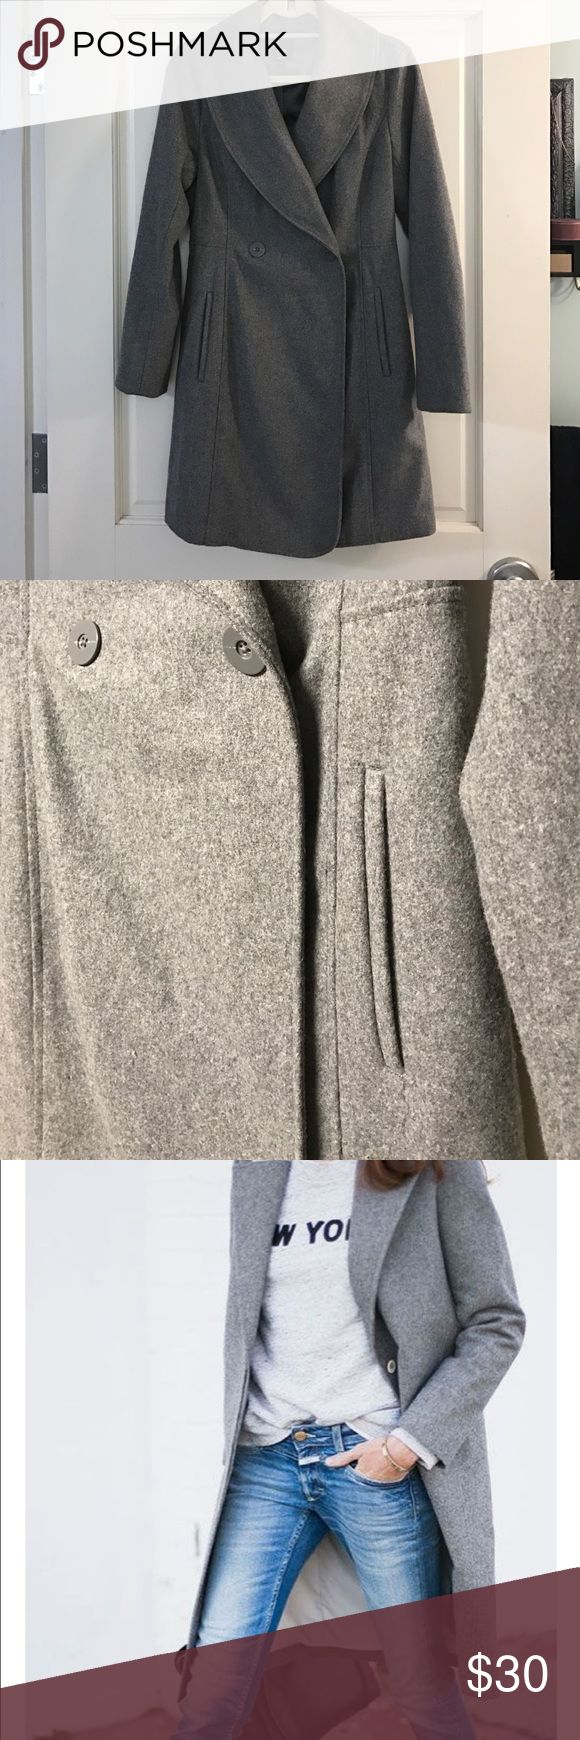 Perfect condition! Long gray wool Gap coat Beautiful long peacoat style trench coat. Perfect condition. Gray is lighter than shown in first picture. GAP Jackets & Coats